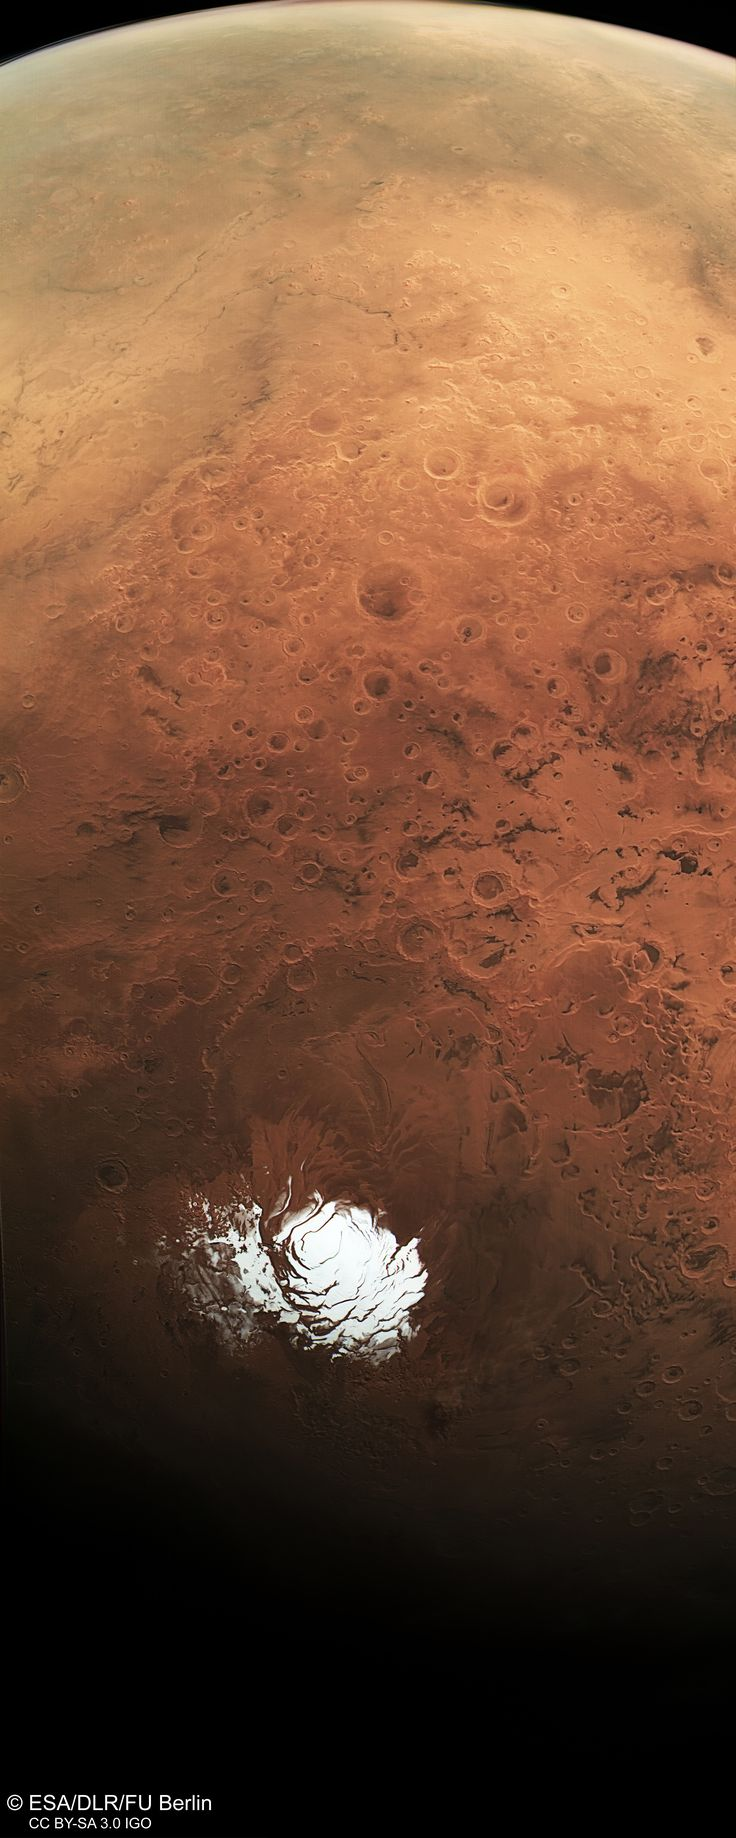 This sweeping view by ESAs Mars Express extends from the planets south polar ice cap and across its cratered highlands to the Hellas Basin (top left) and beyond